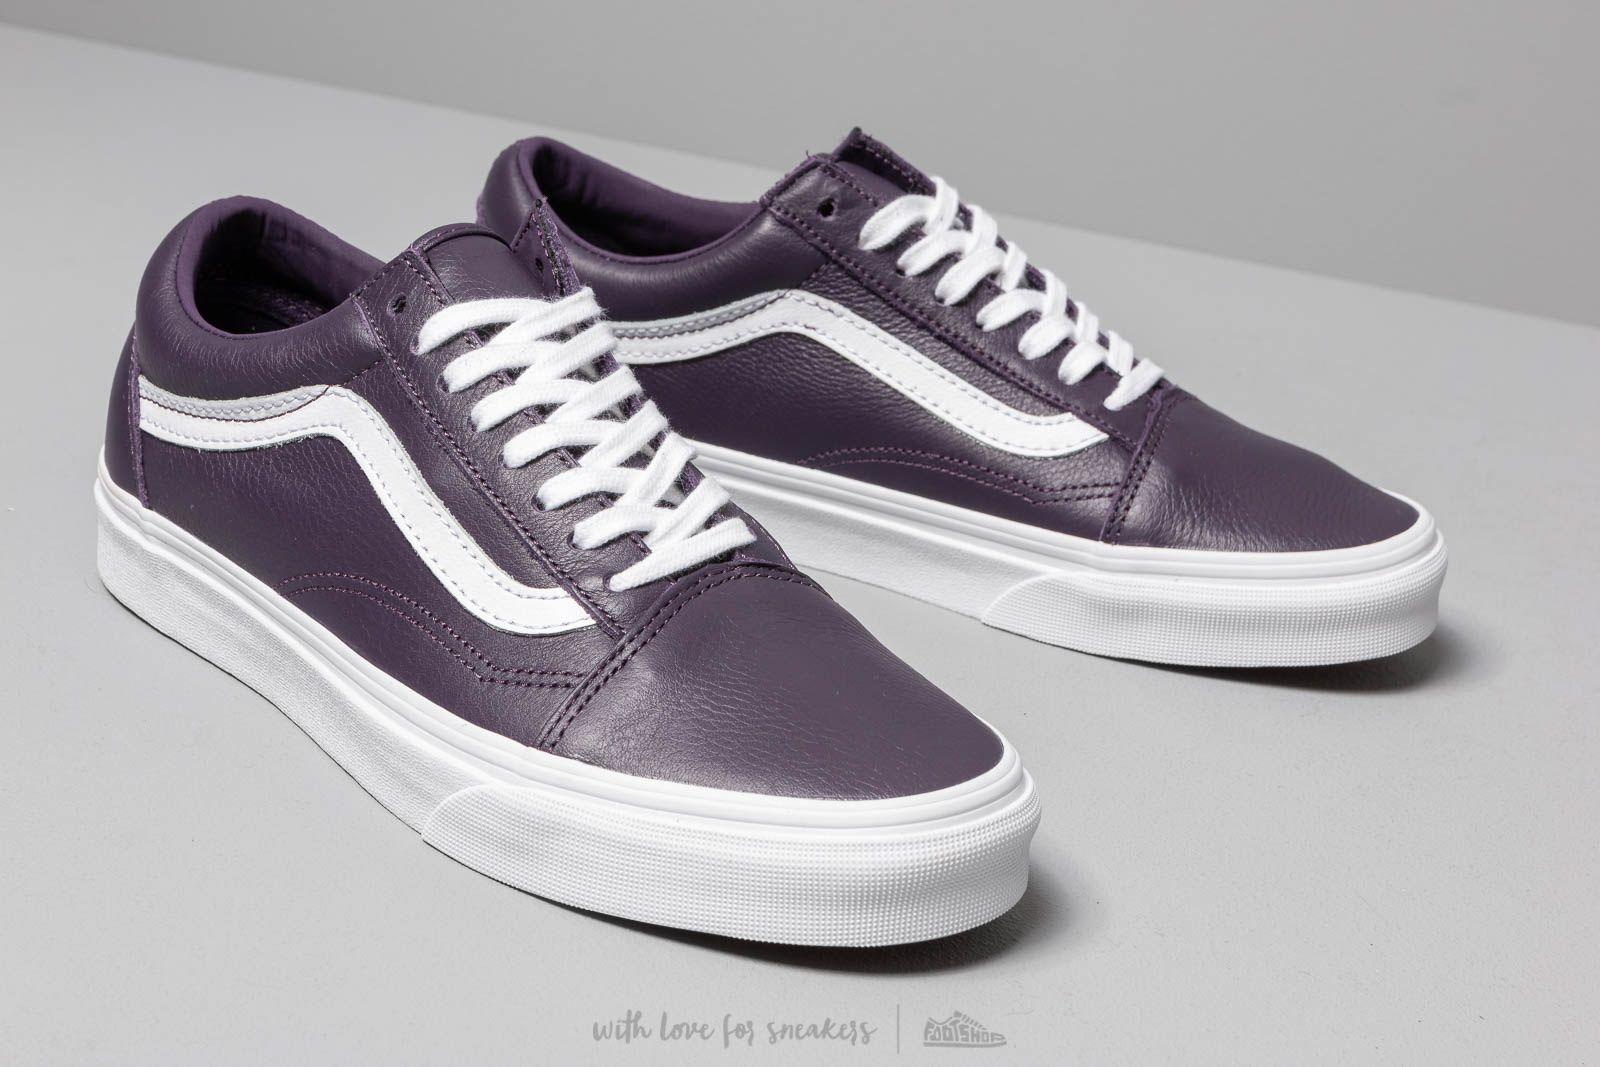 Vans Old Skool (Leather) Mysterioso True | Footshop